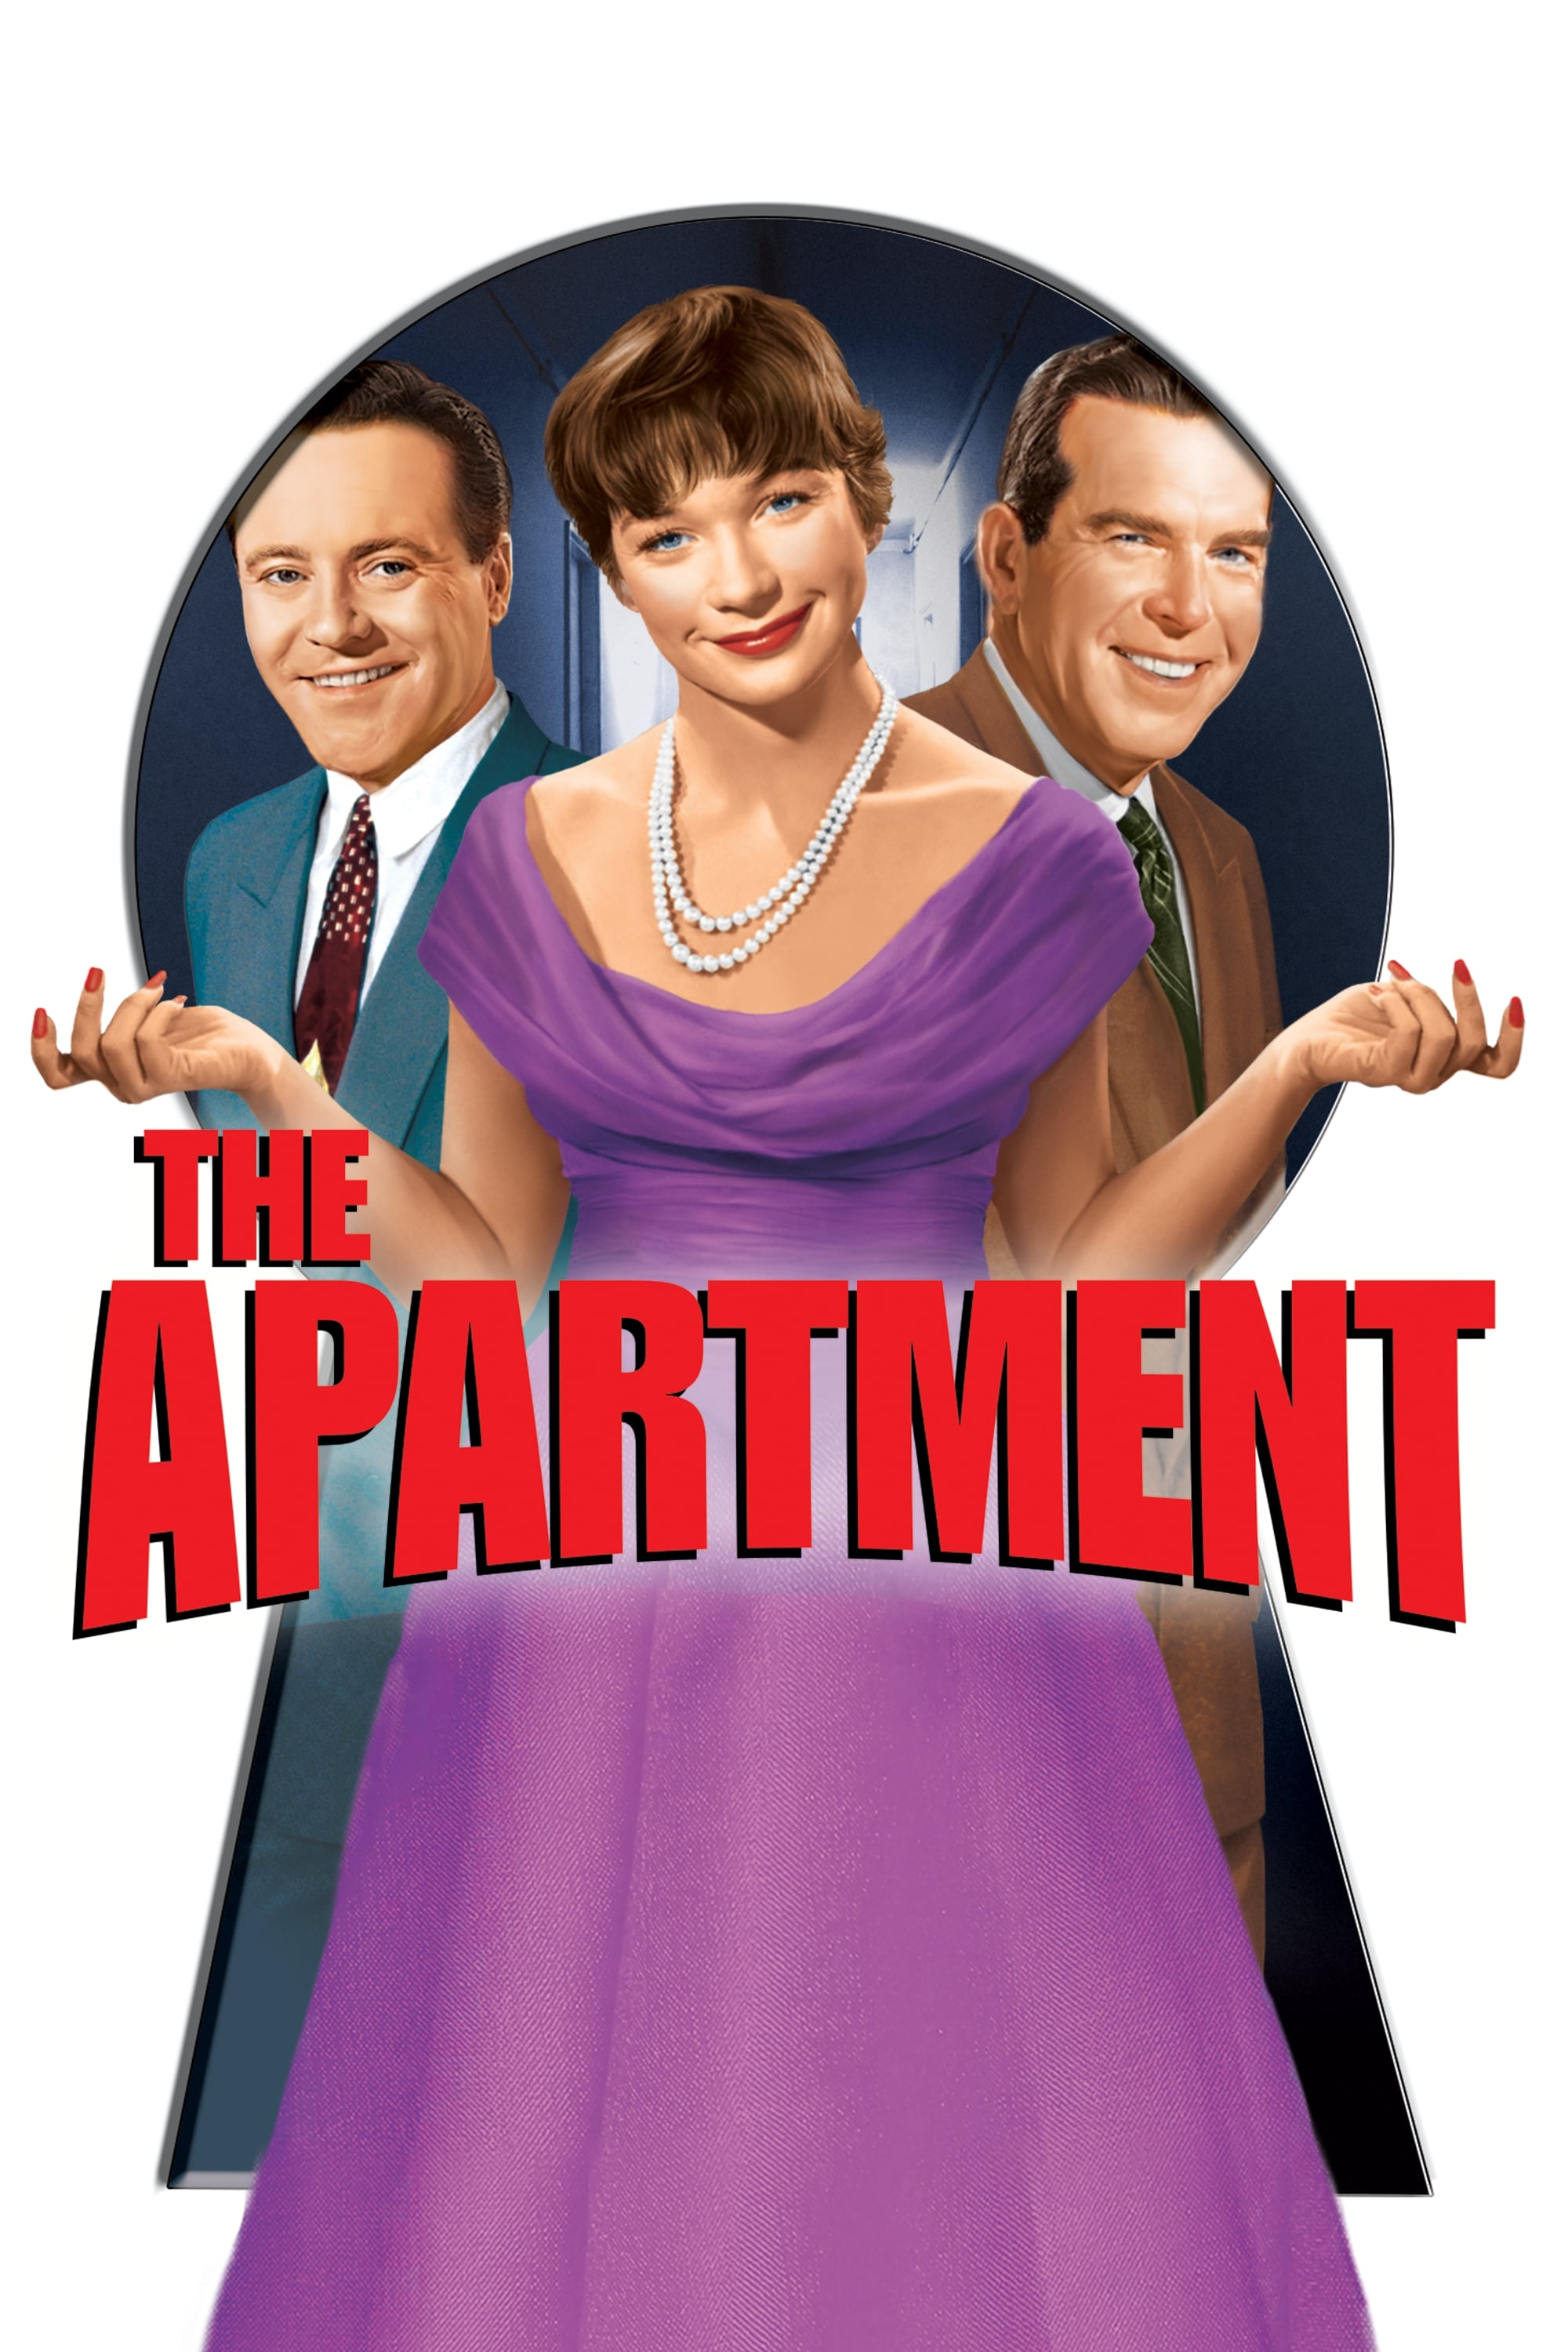 The Apartment (1960) - Posters — The Movie Database (TMDb)